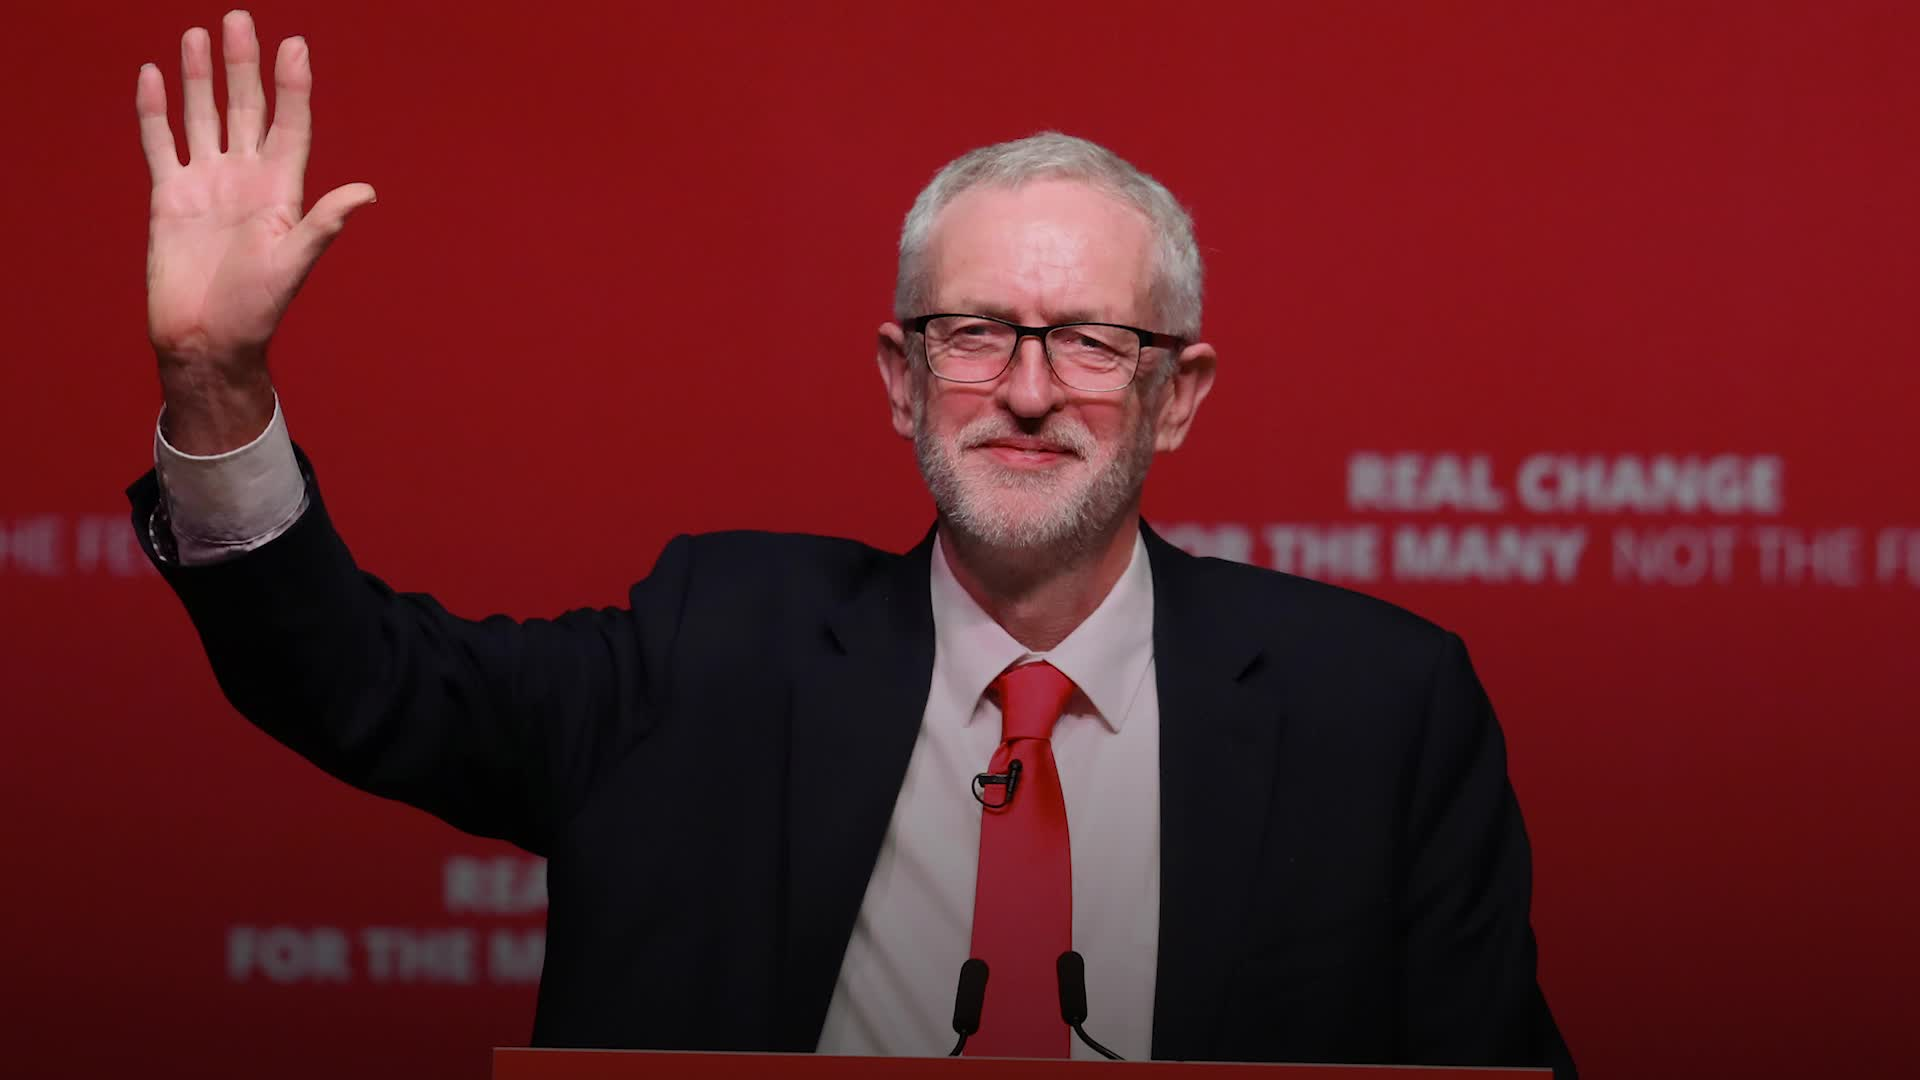 Labour Party Vows To Abolish 'Unfit For Purpose' Ofsted